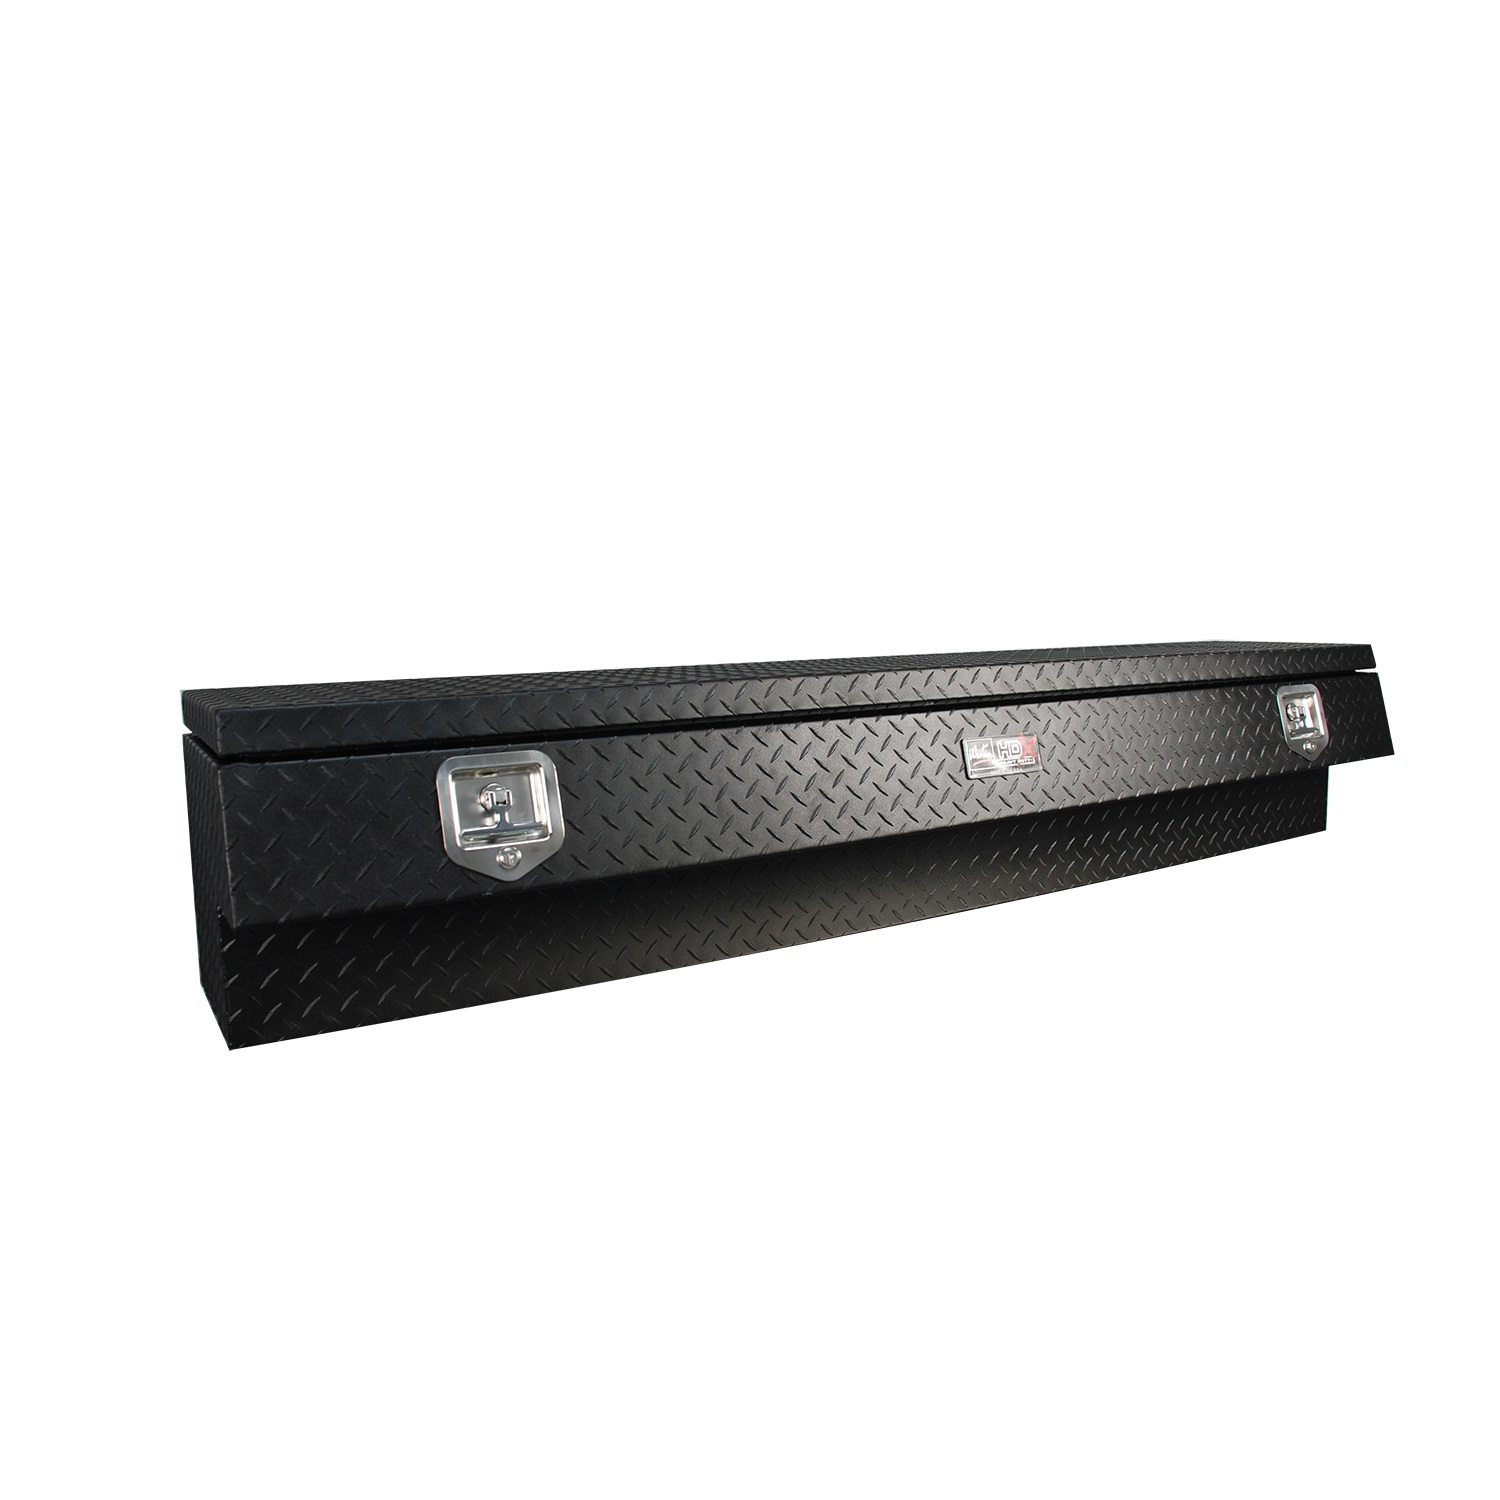 Westin 57-7125 HDX Series; Low Sider Tool Box at Sears.com